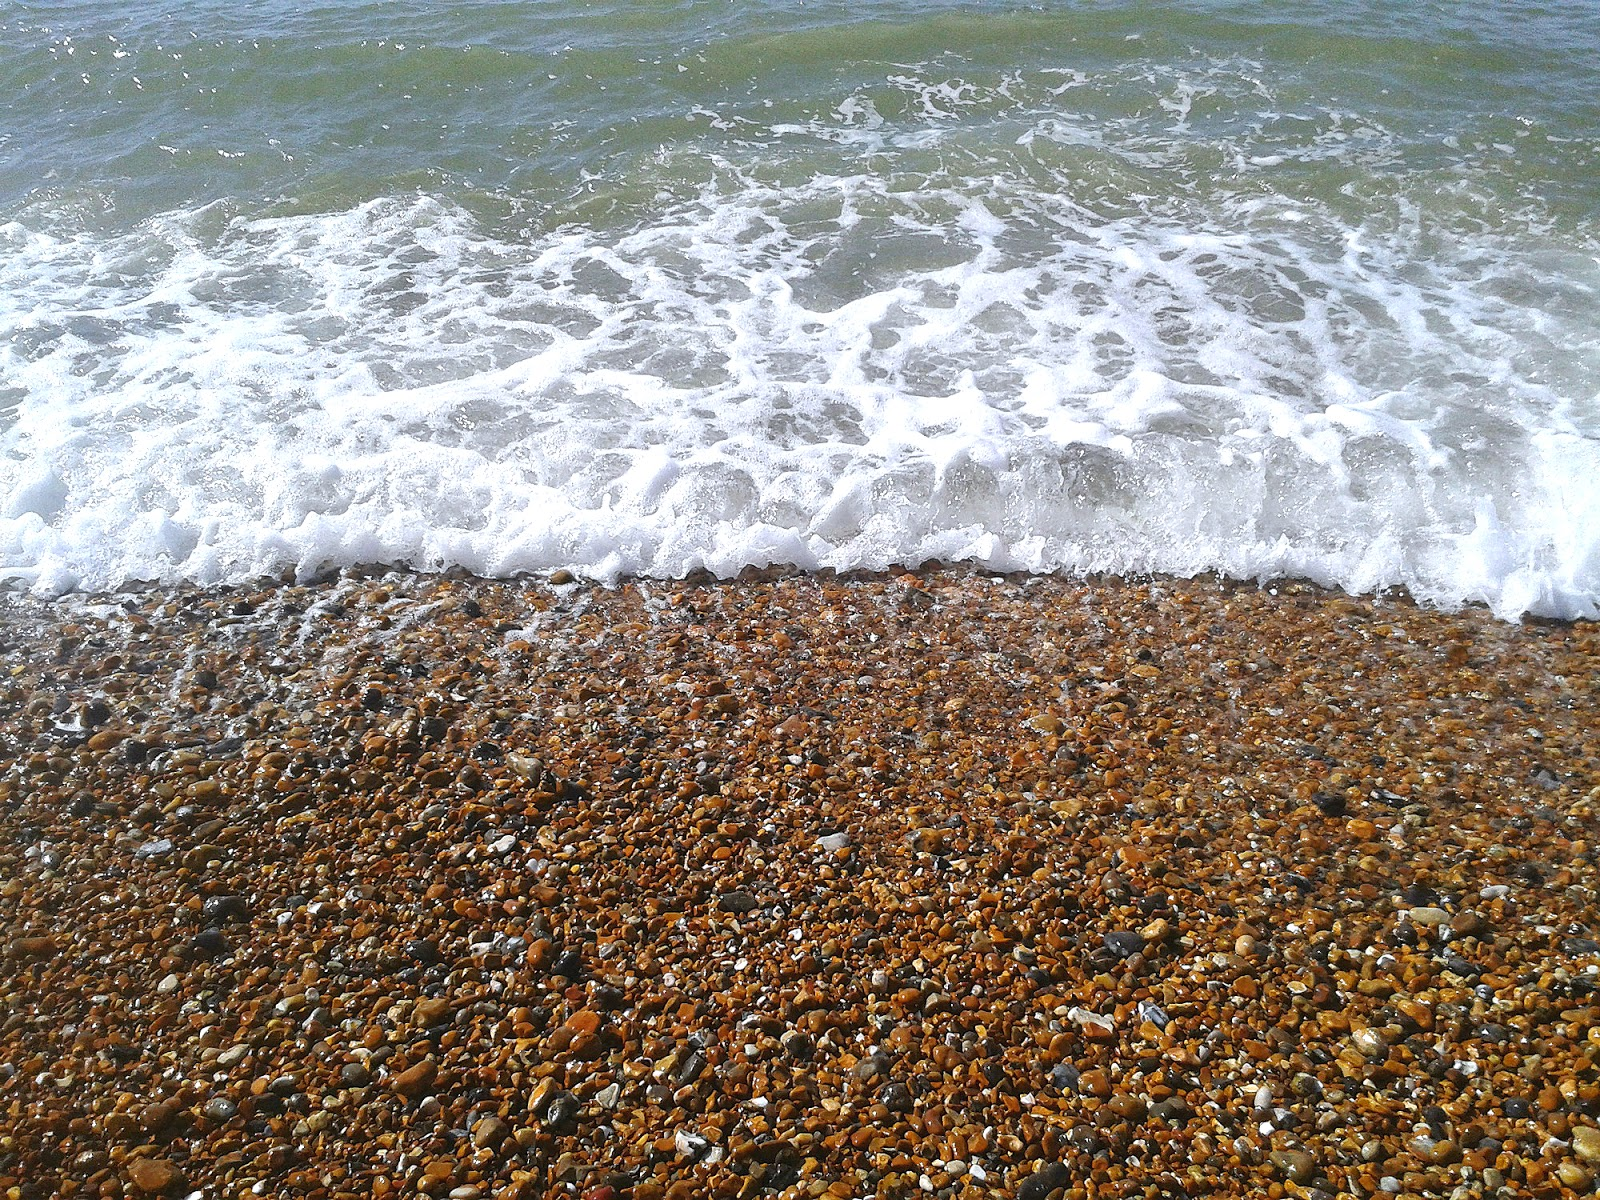 A shot of the waves coming in and covering the pebbles on the beach